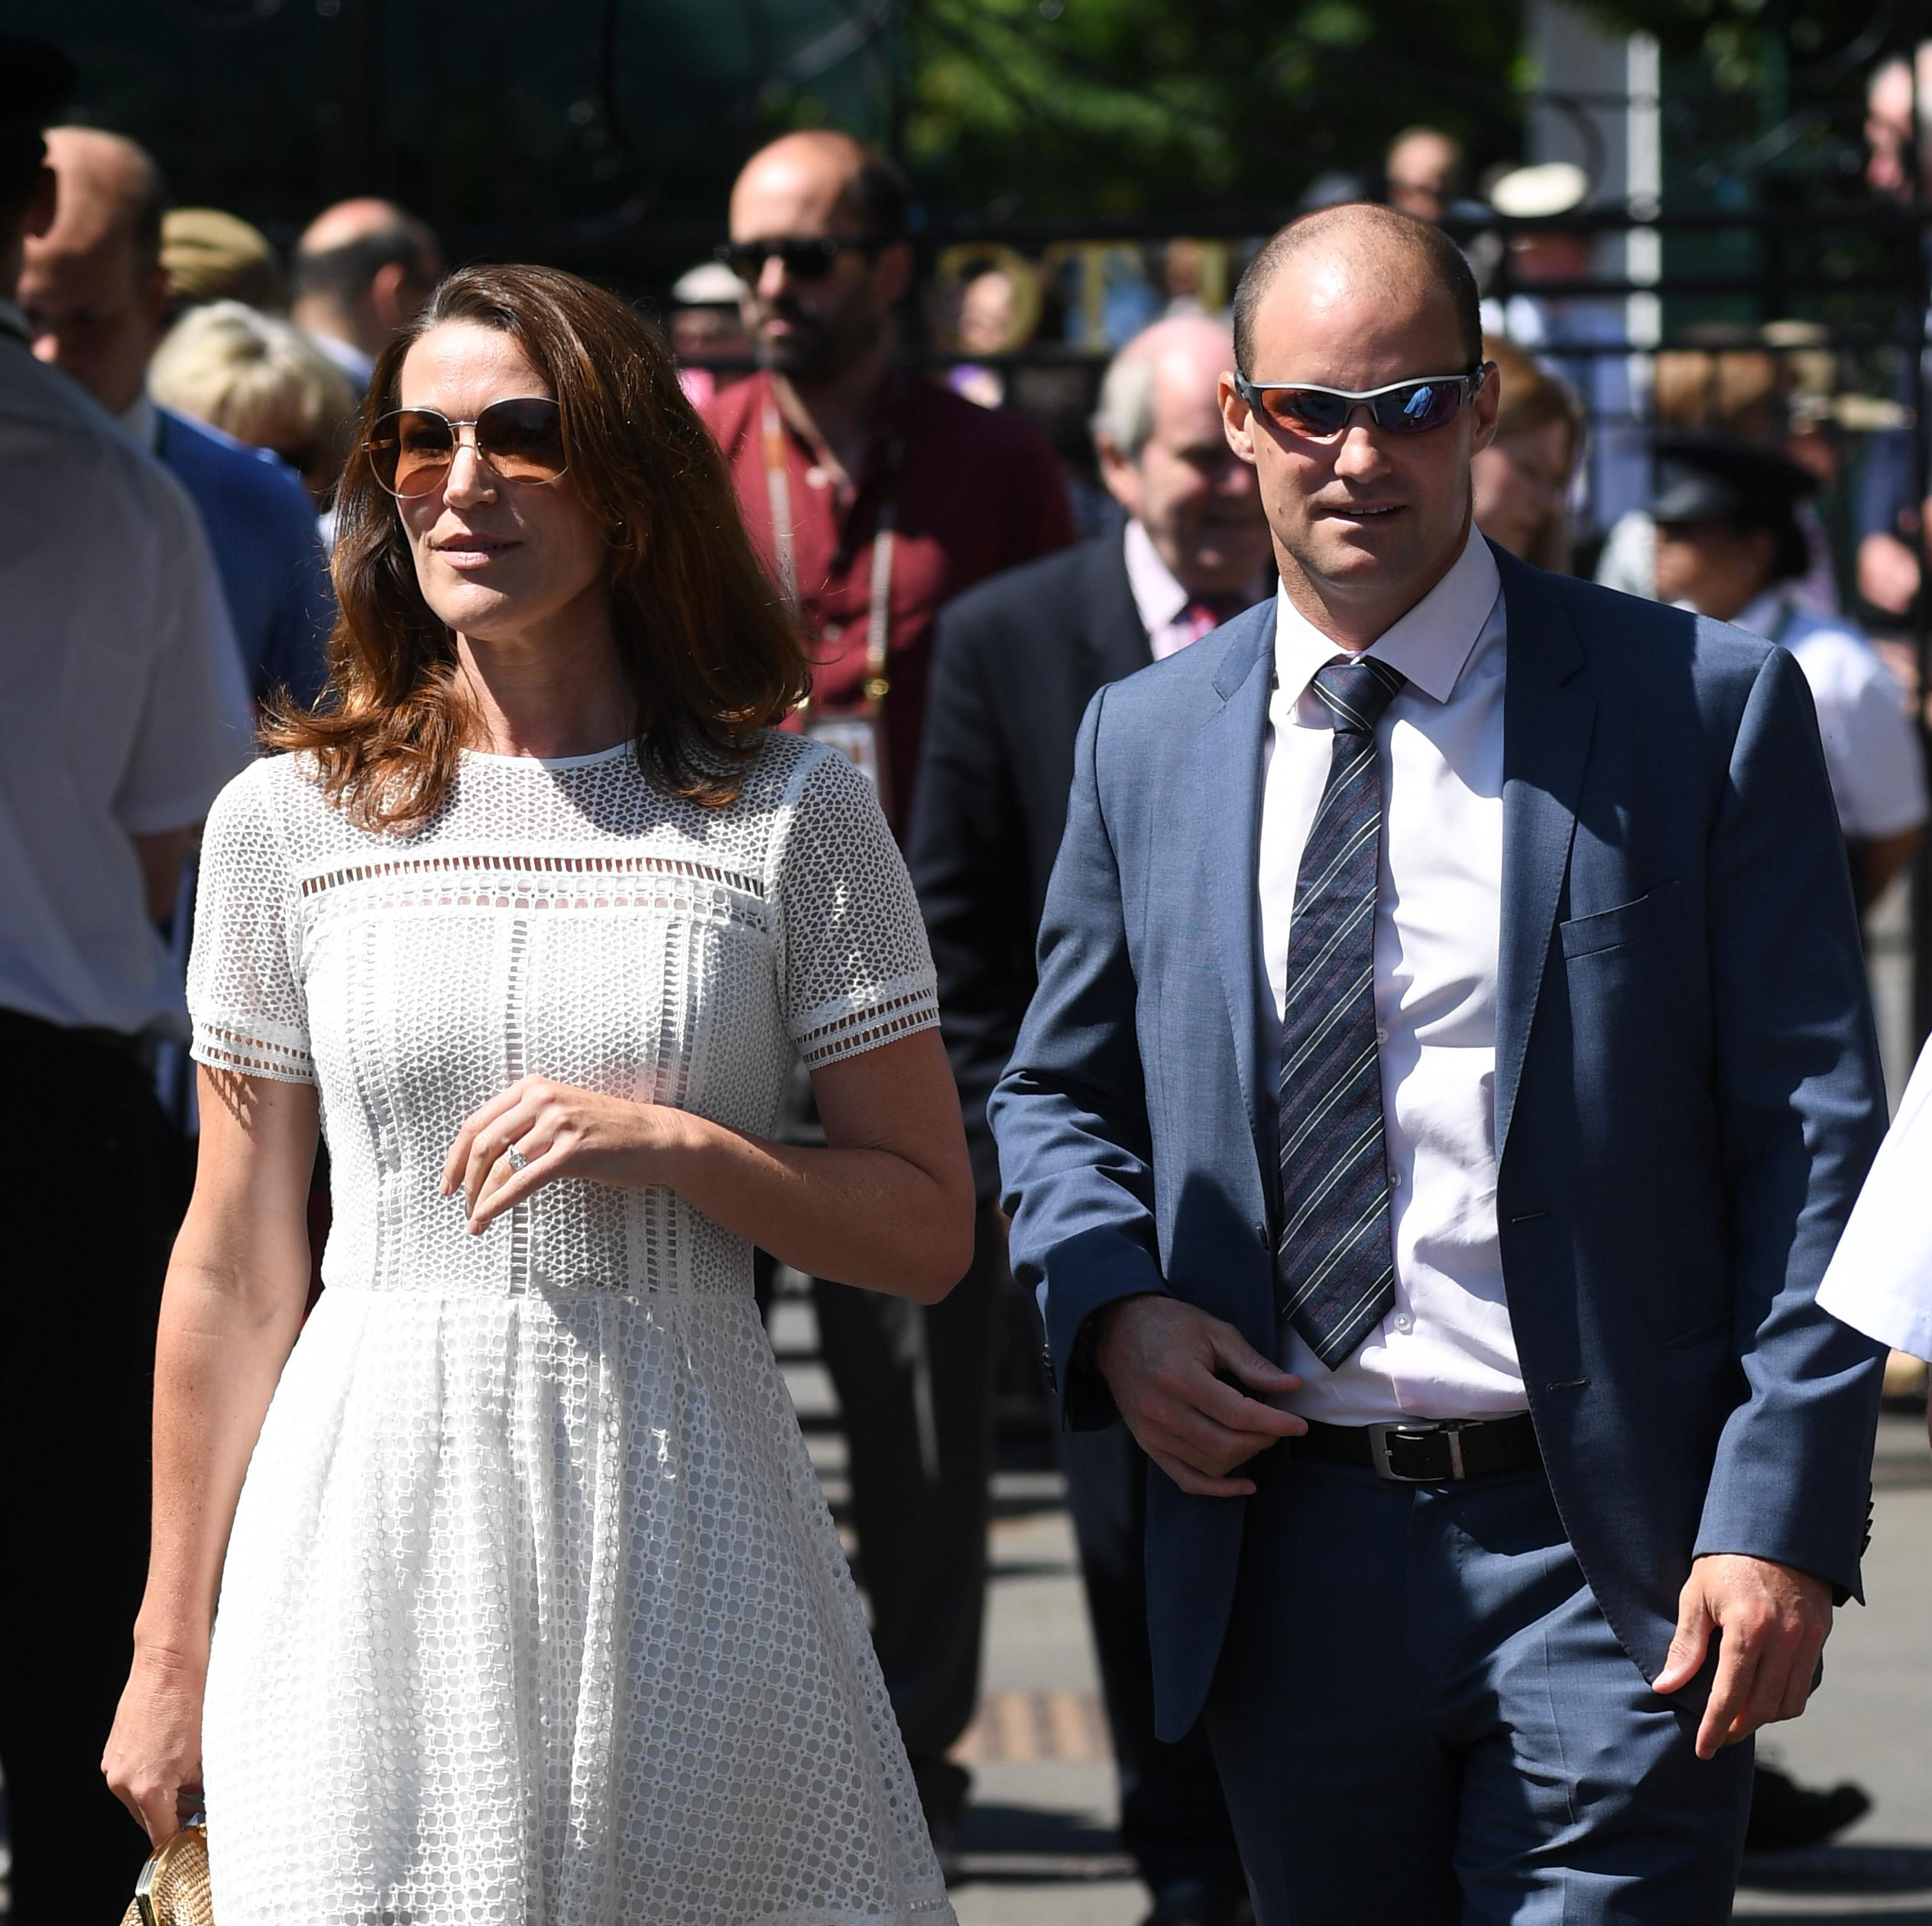 Strauss' wife Ruth, left, has been battling cancer and the former batsman has declared his desire to support her